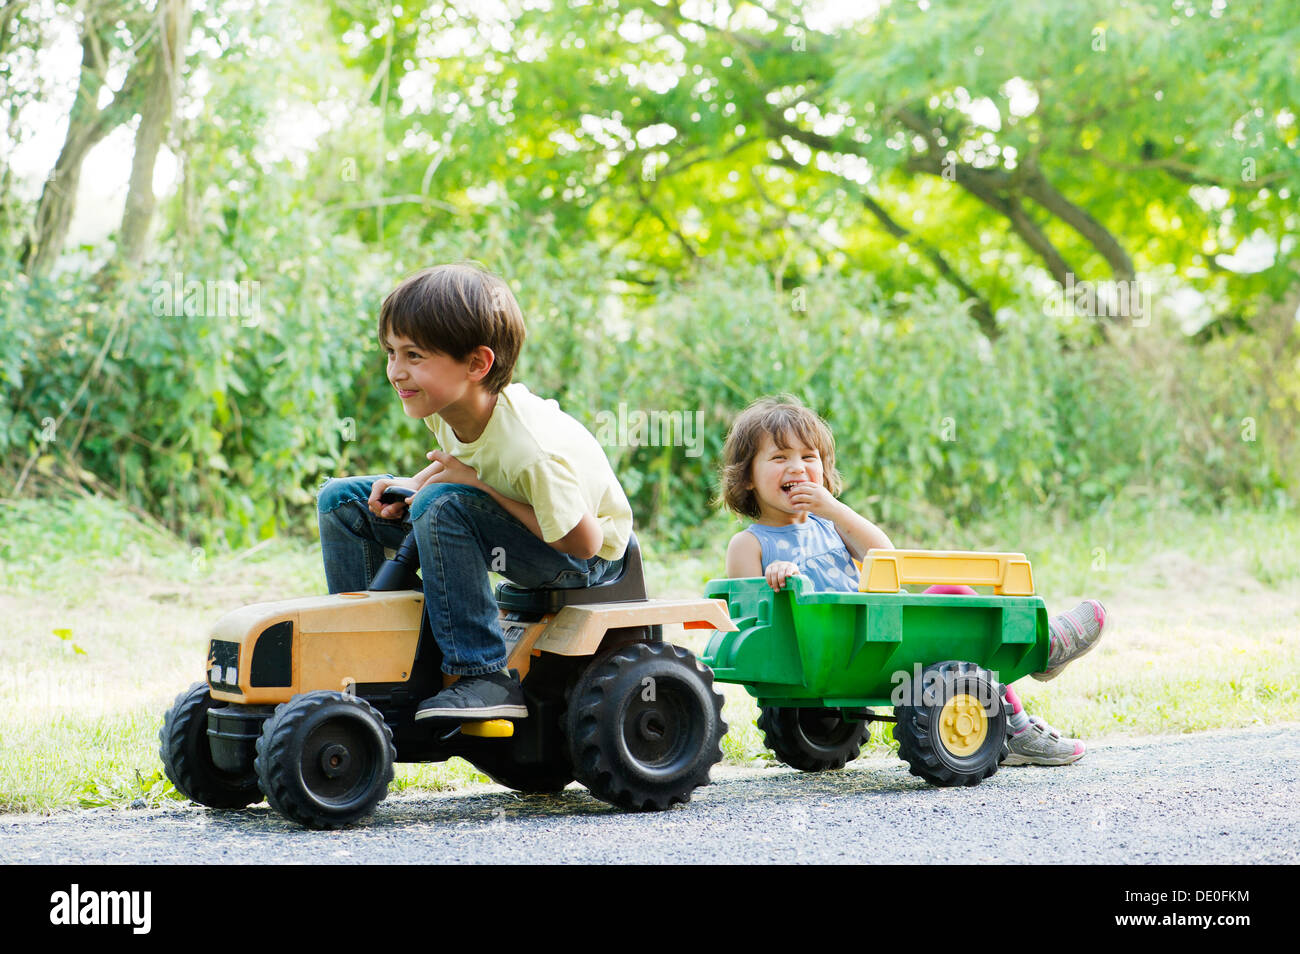 Young brother and sister riding on toy tractor - Stock Image